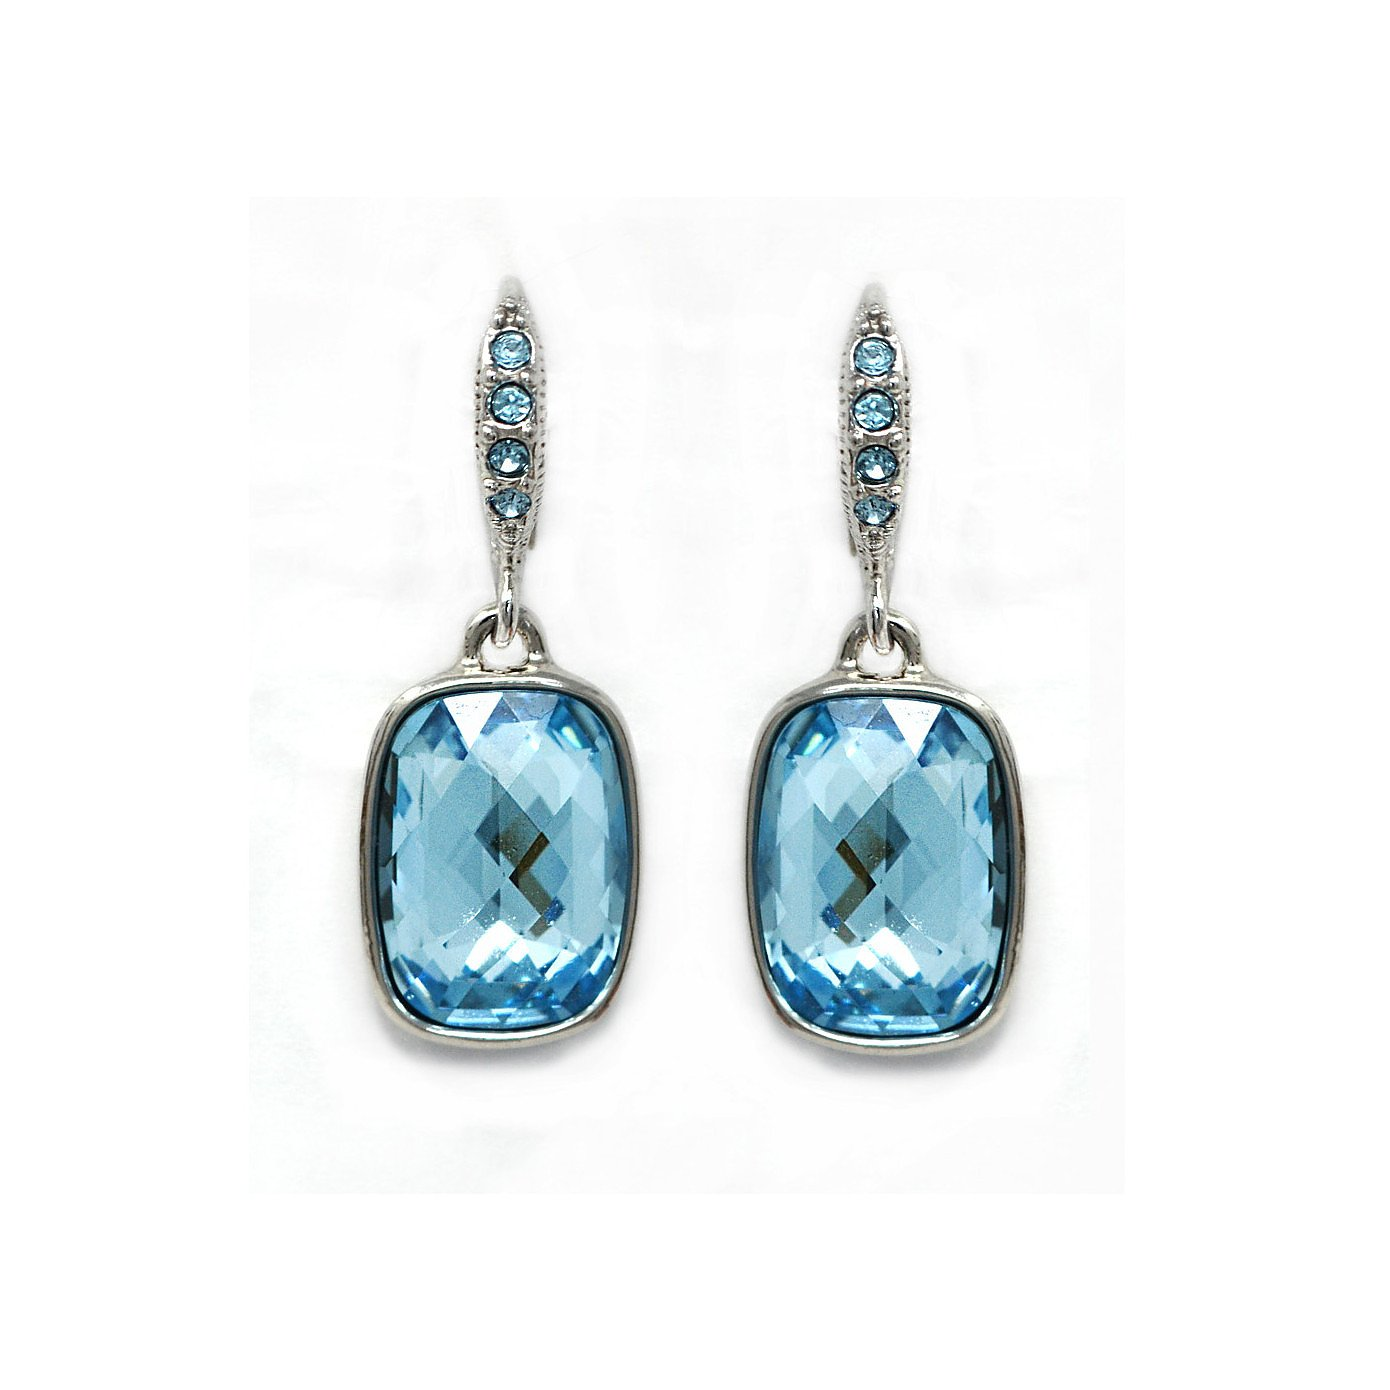 Givenchy Vintage Crystal Earrings